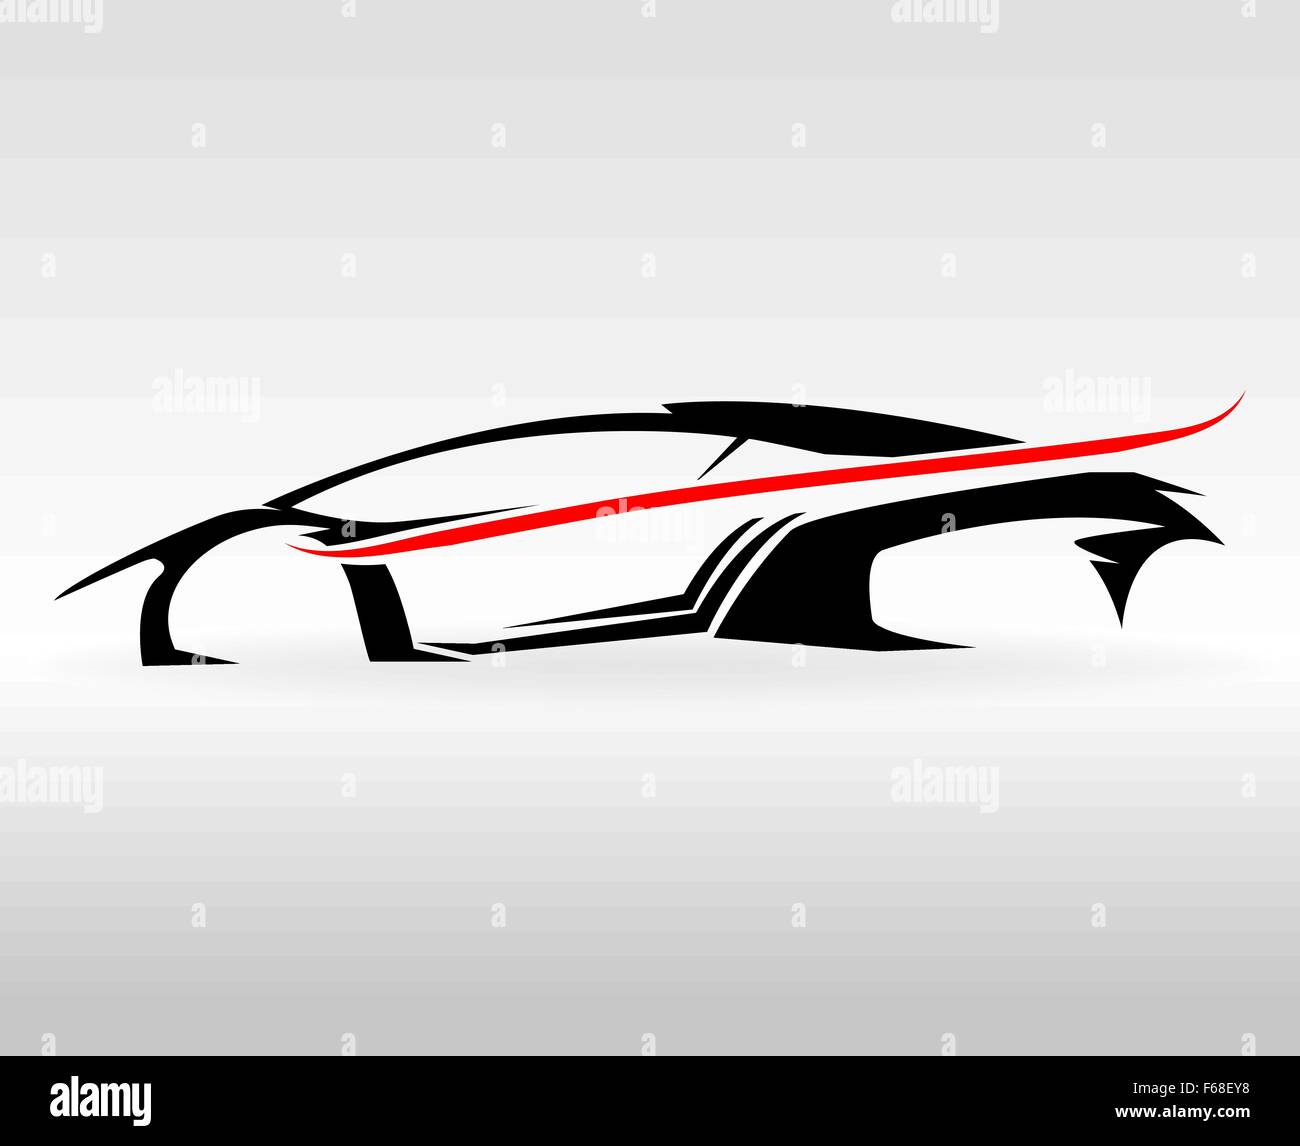 Concept Sports car Vehicle outlines graphic - Stock Image